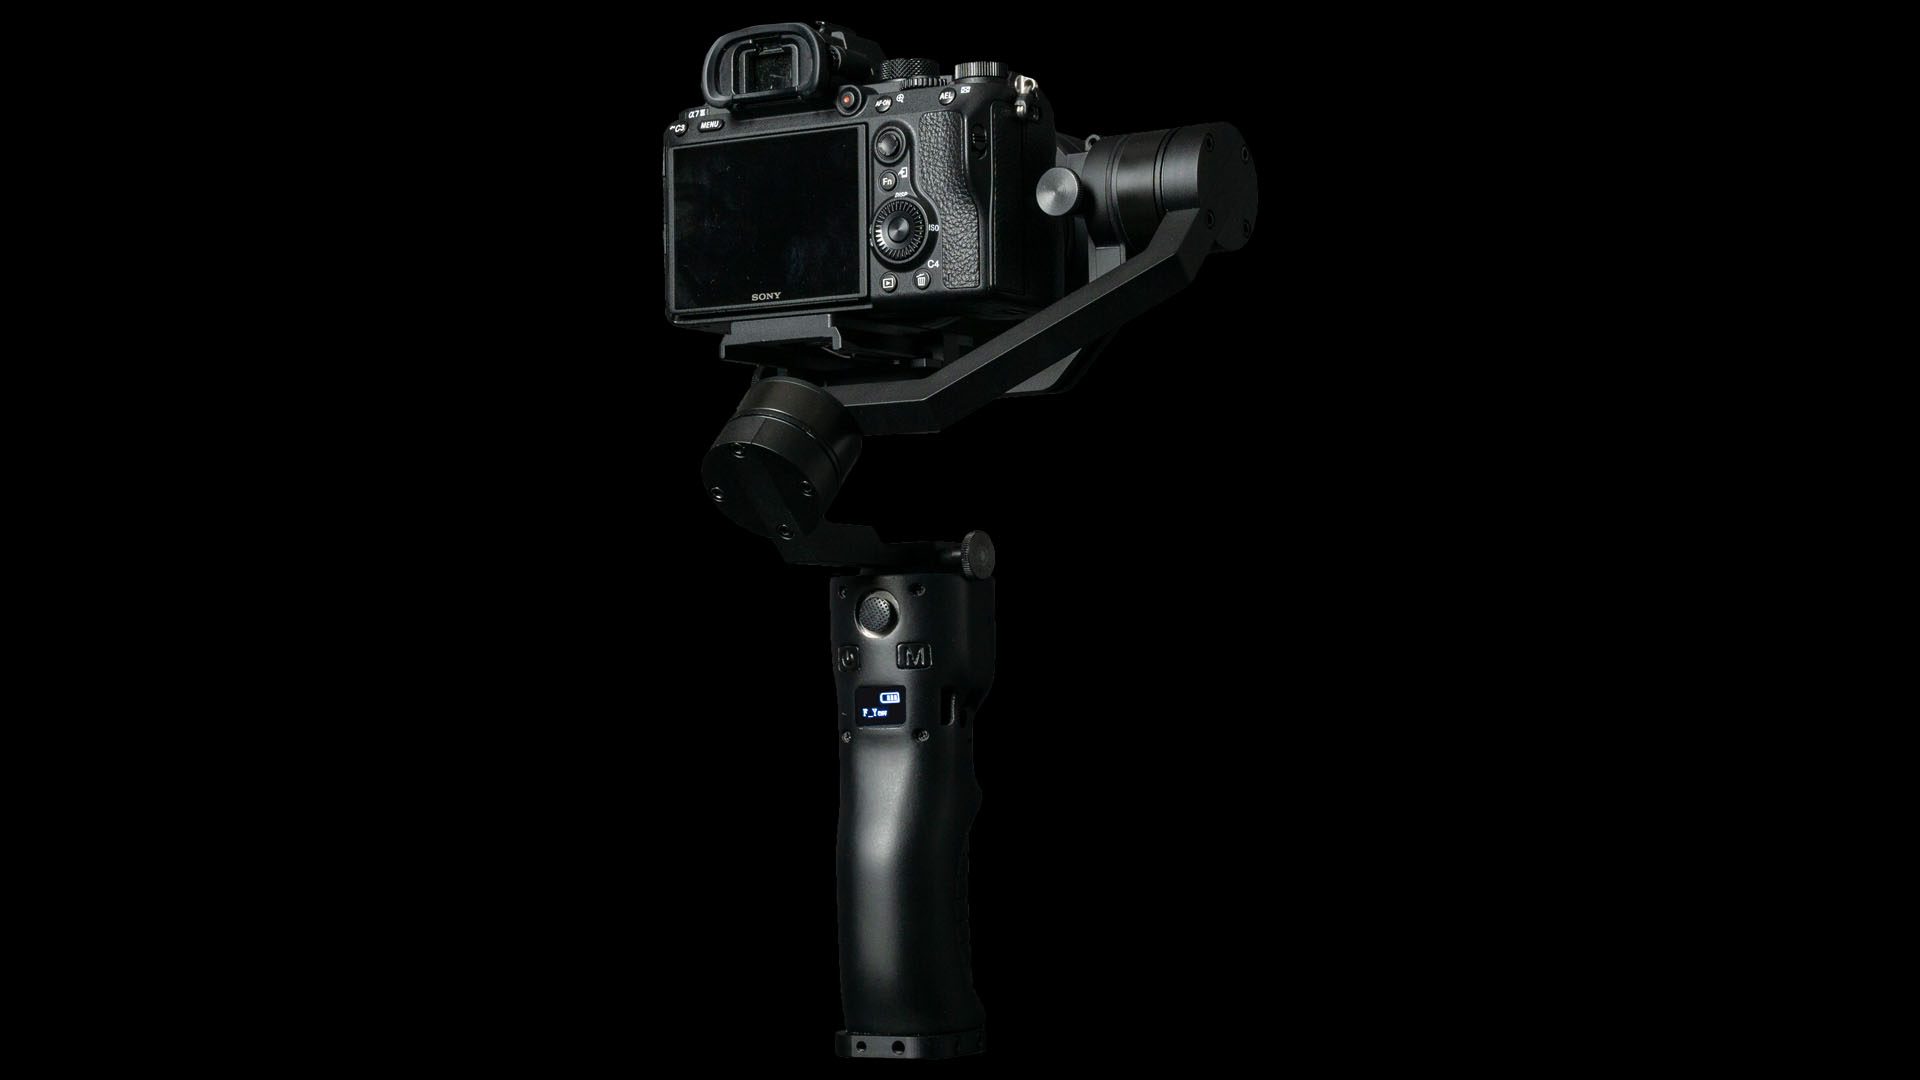 icecam-gimbal tiny 3 ultravision